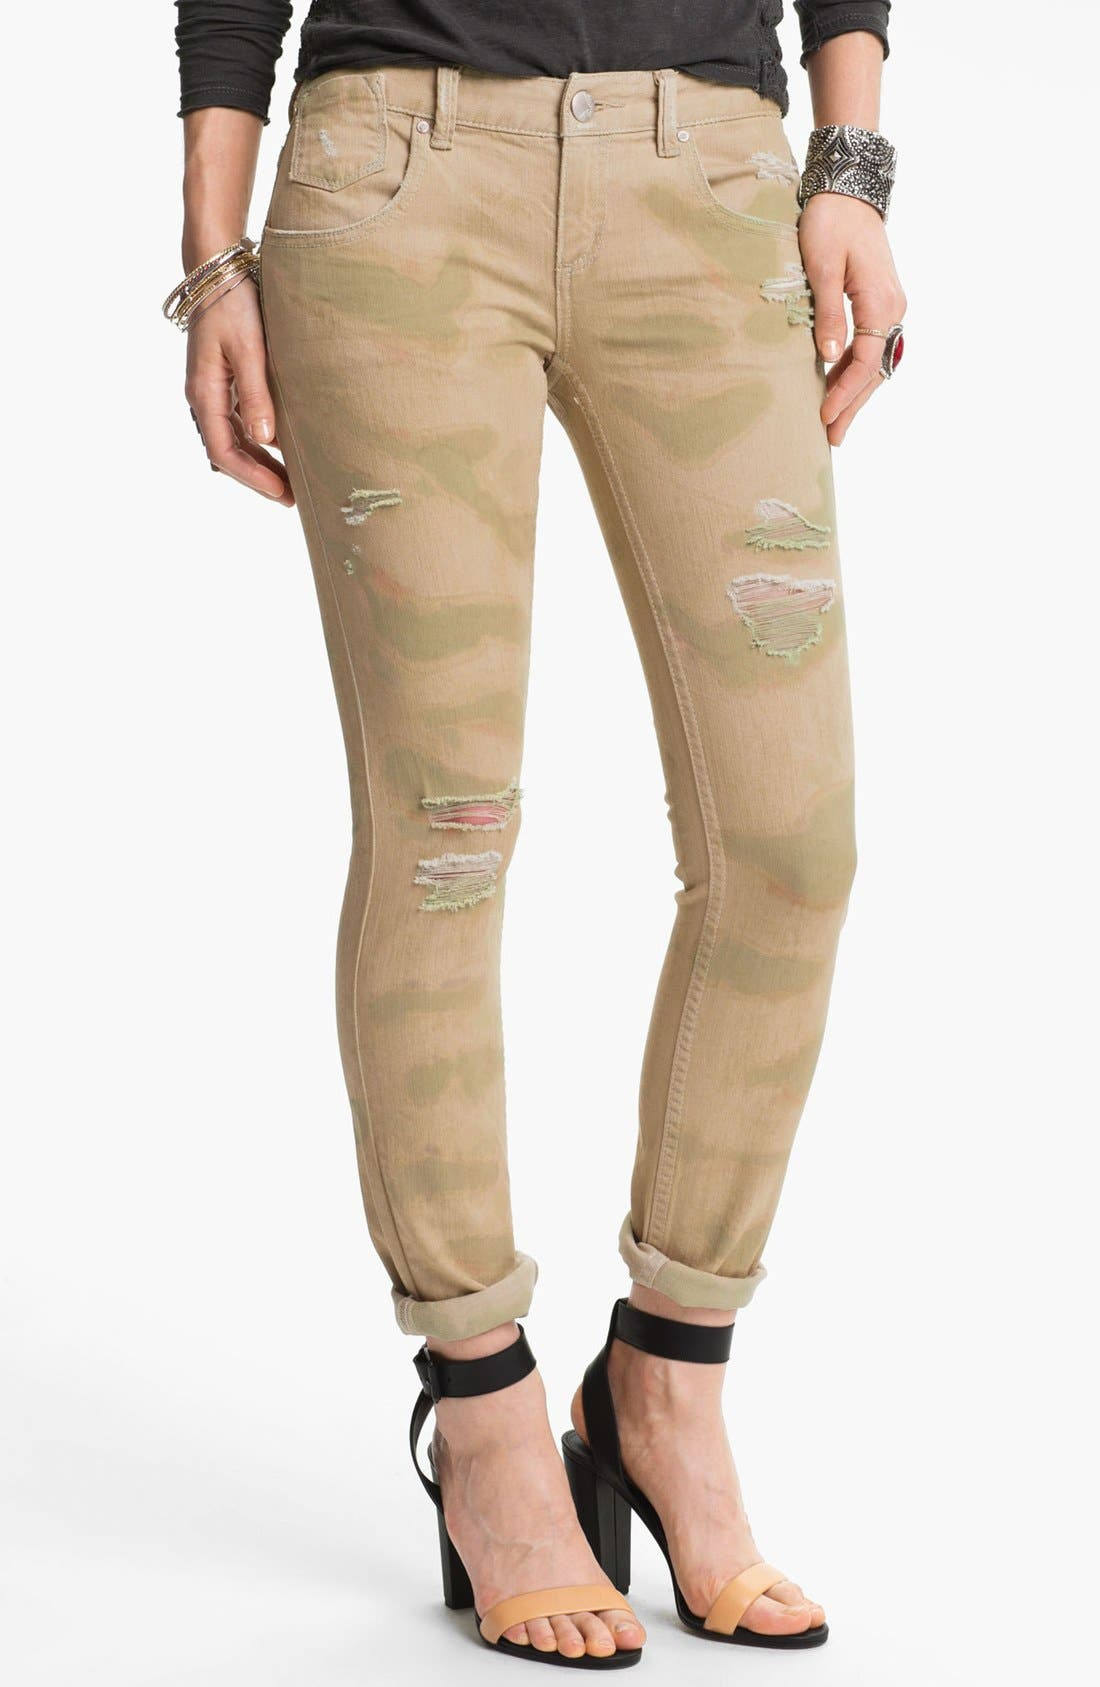 Alternate Image 1 Selected - Free People Print Destroyed Skinny Jeans (Castro)